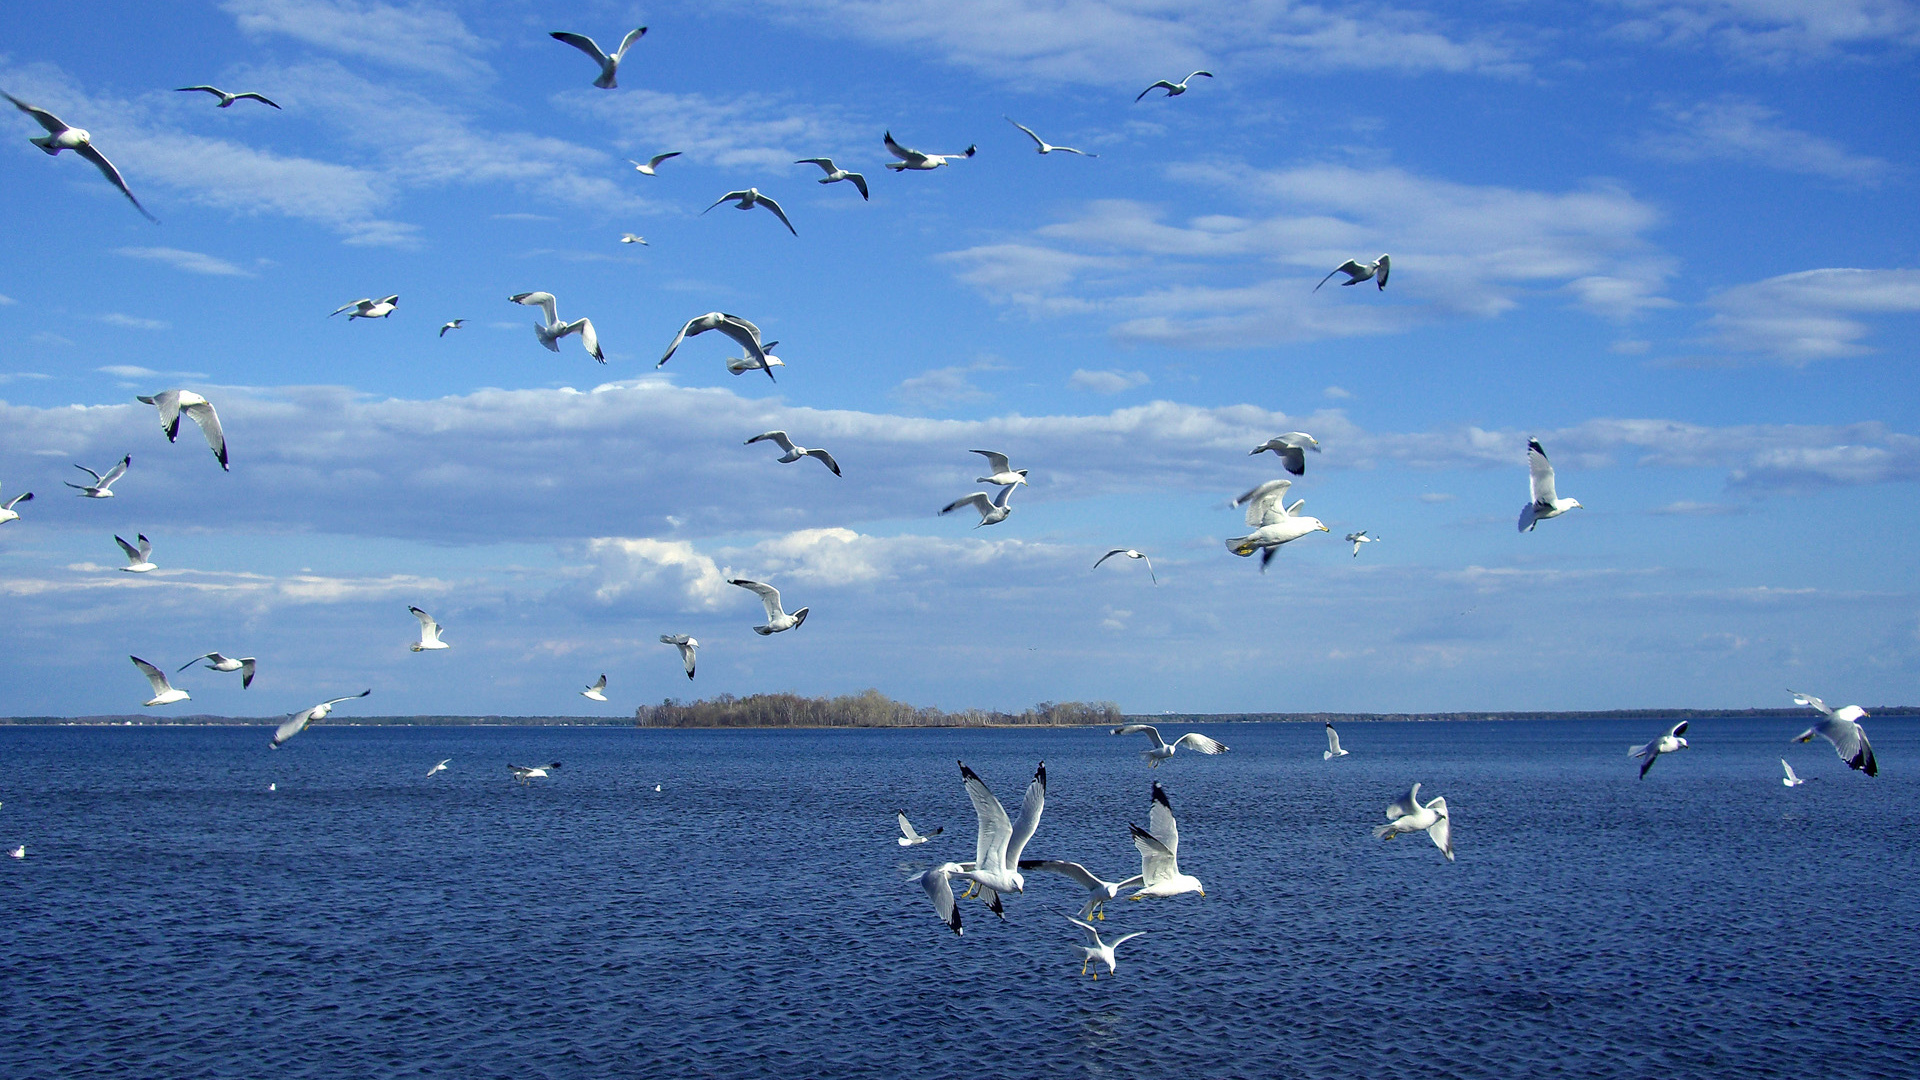 40733 download wallpaper Animals, Birds, Seagulls screensavers and pictures for free